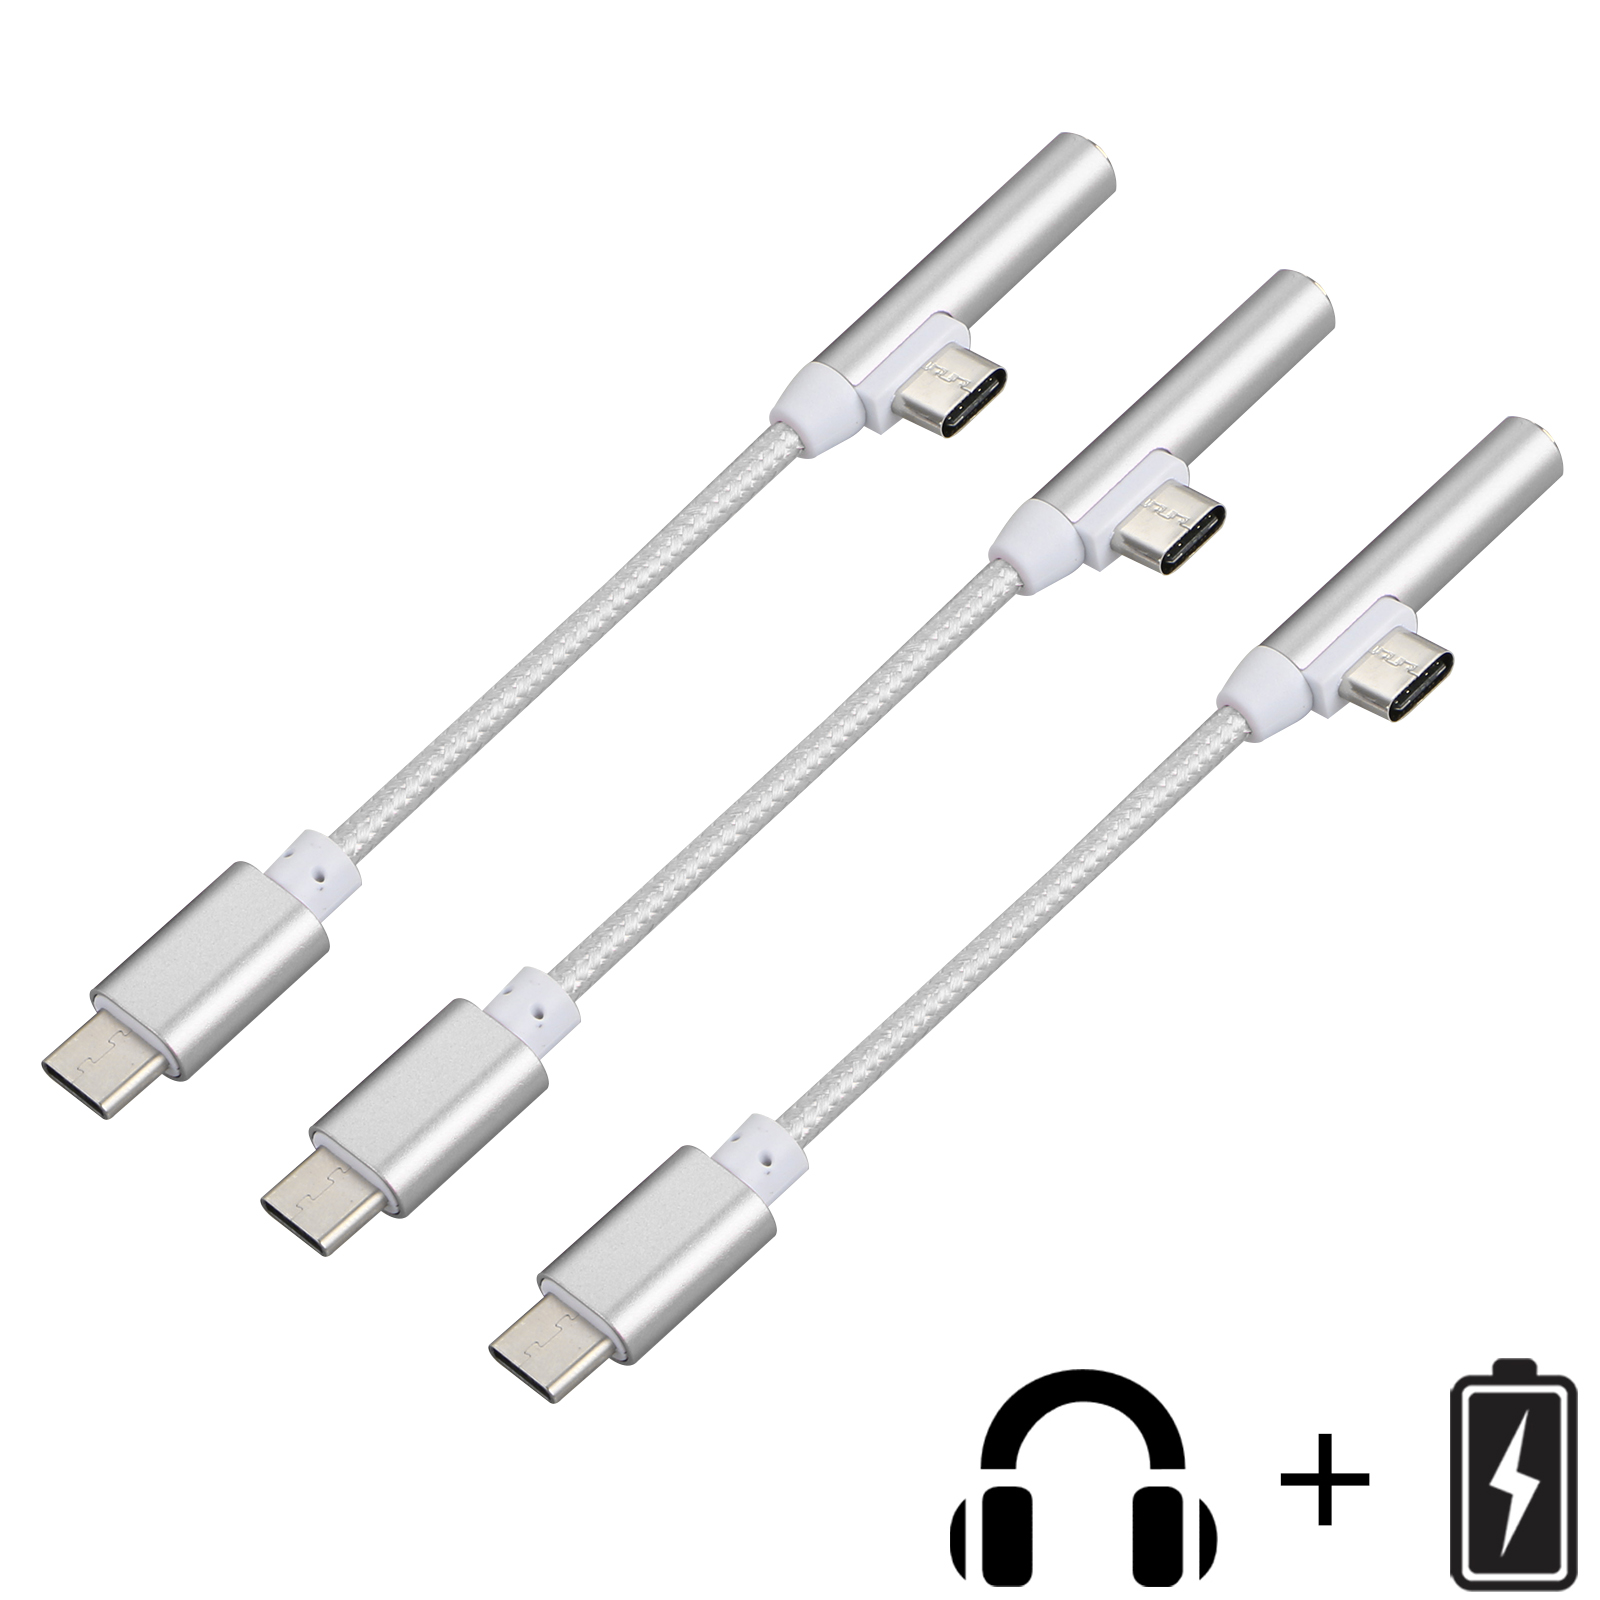 3-pack 2 in 1 Type-C 3.5mm Audio Jack Cable, USB-C Jack Audio Adapter, Headphone Charger Converter Supports Audio and Charging Cord Cable for Samsung Motorola Oneplus